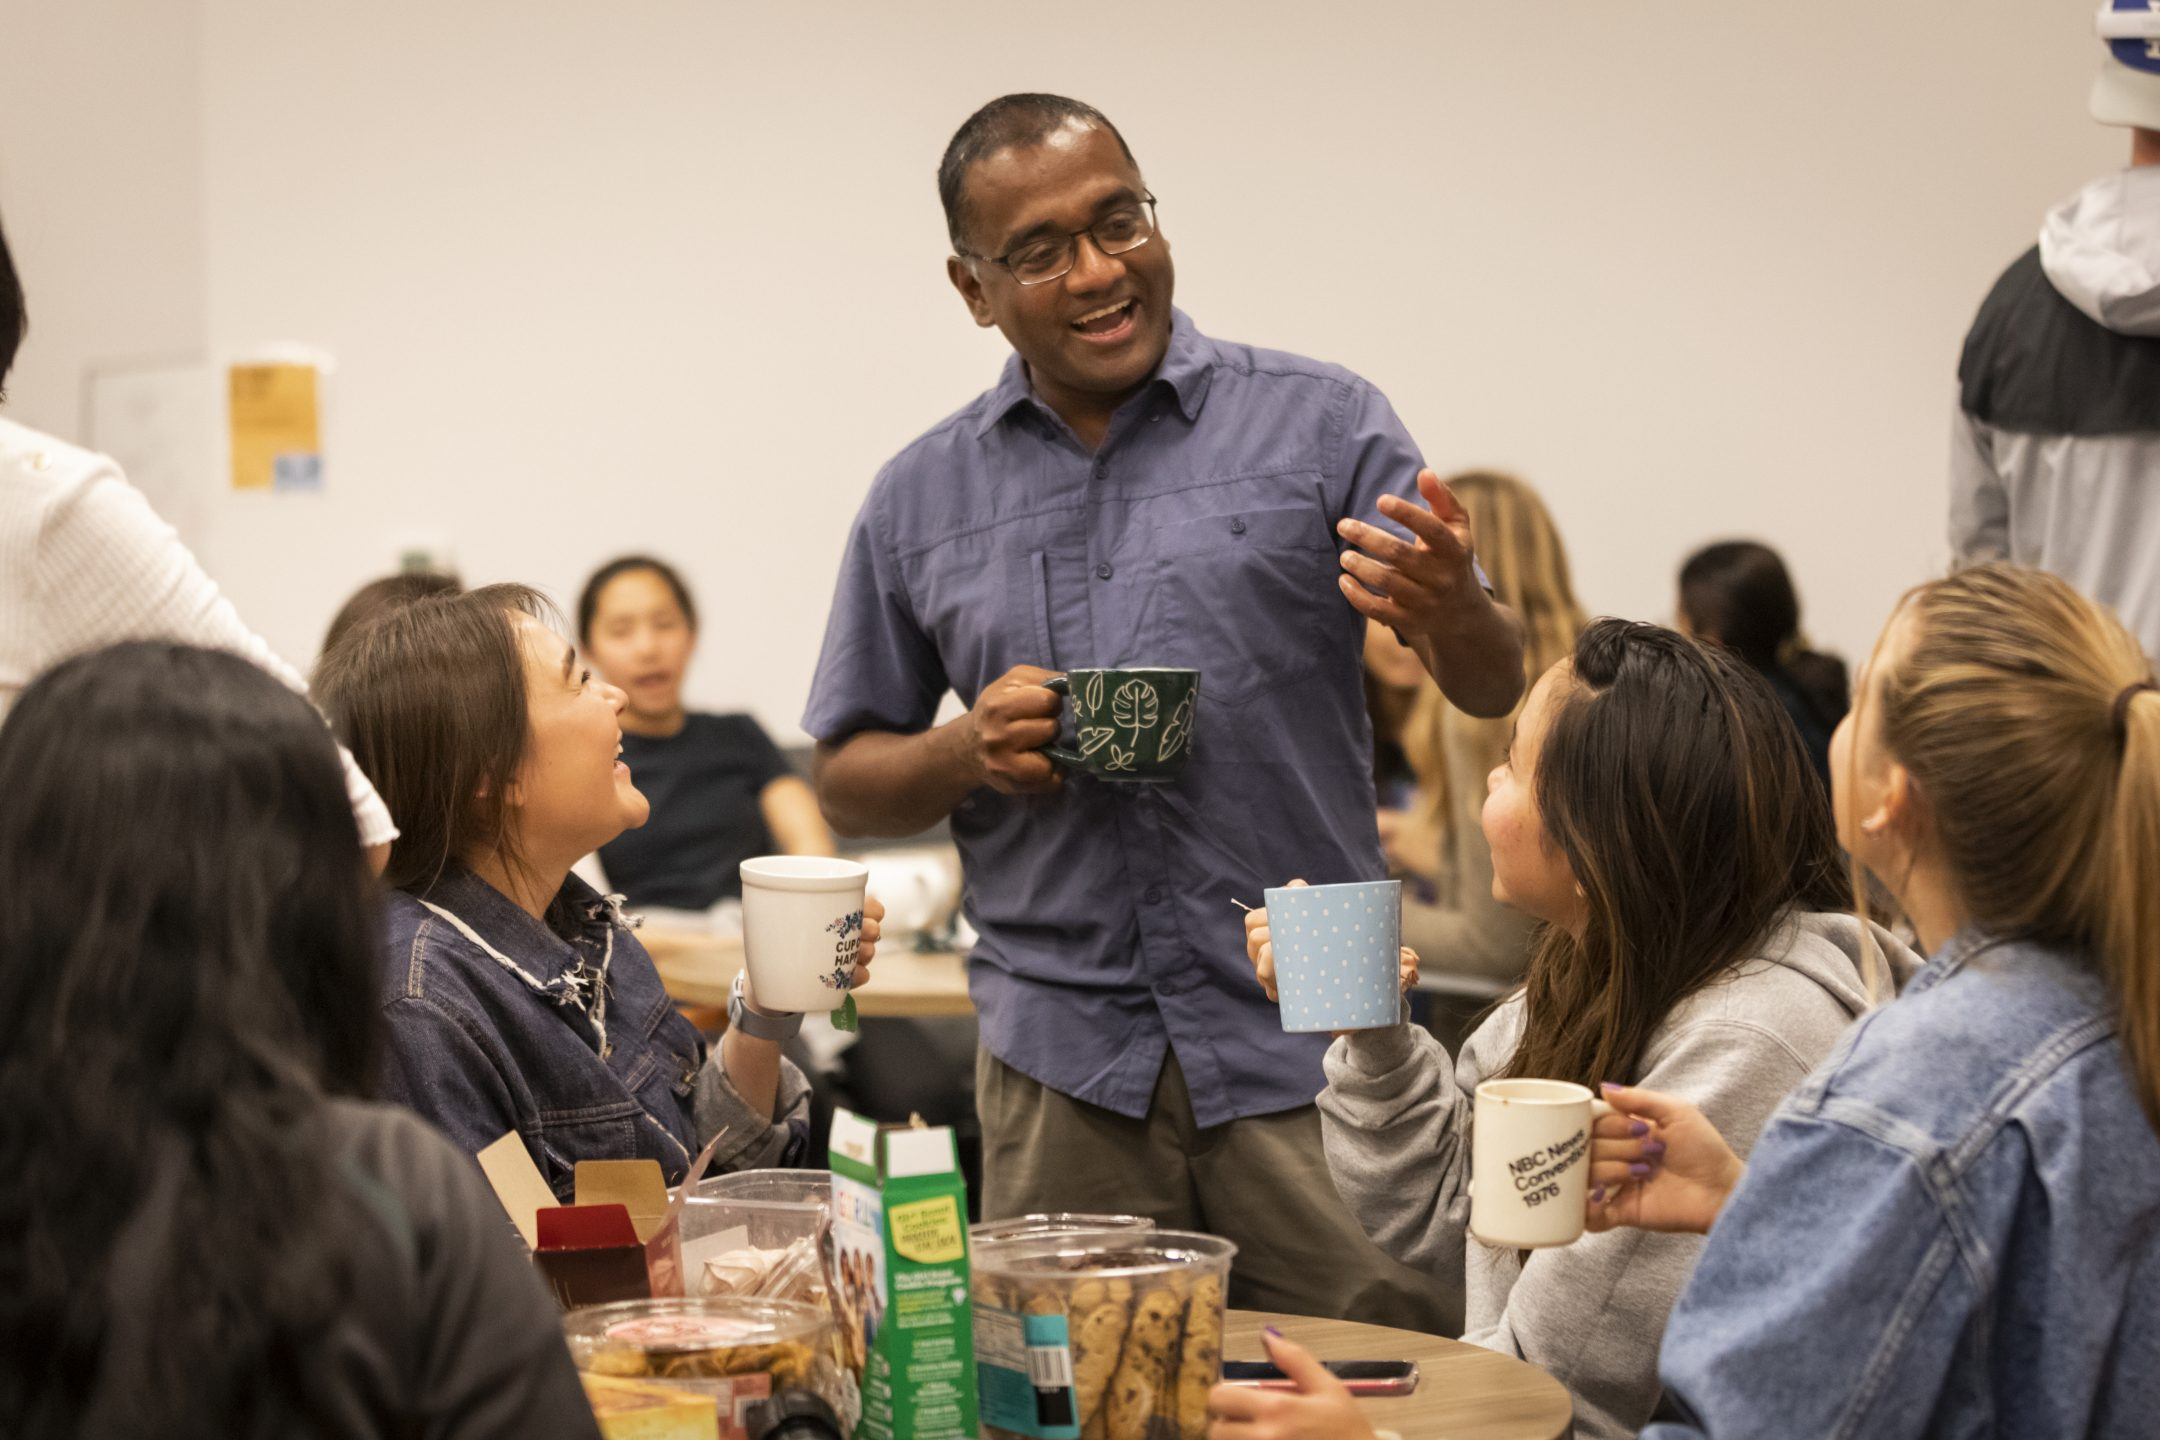 A professor in a blue shirt stands with a tea cup, chatting with students sitting at a table.